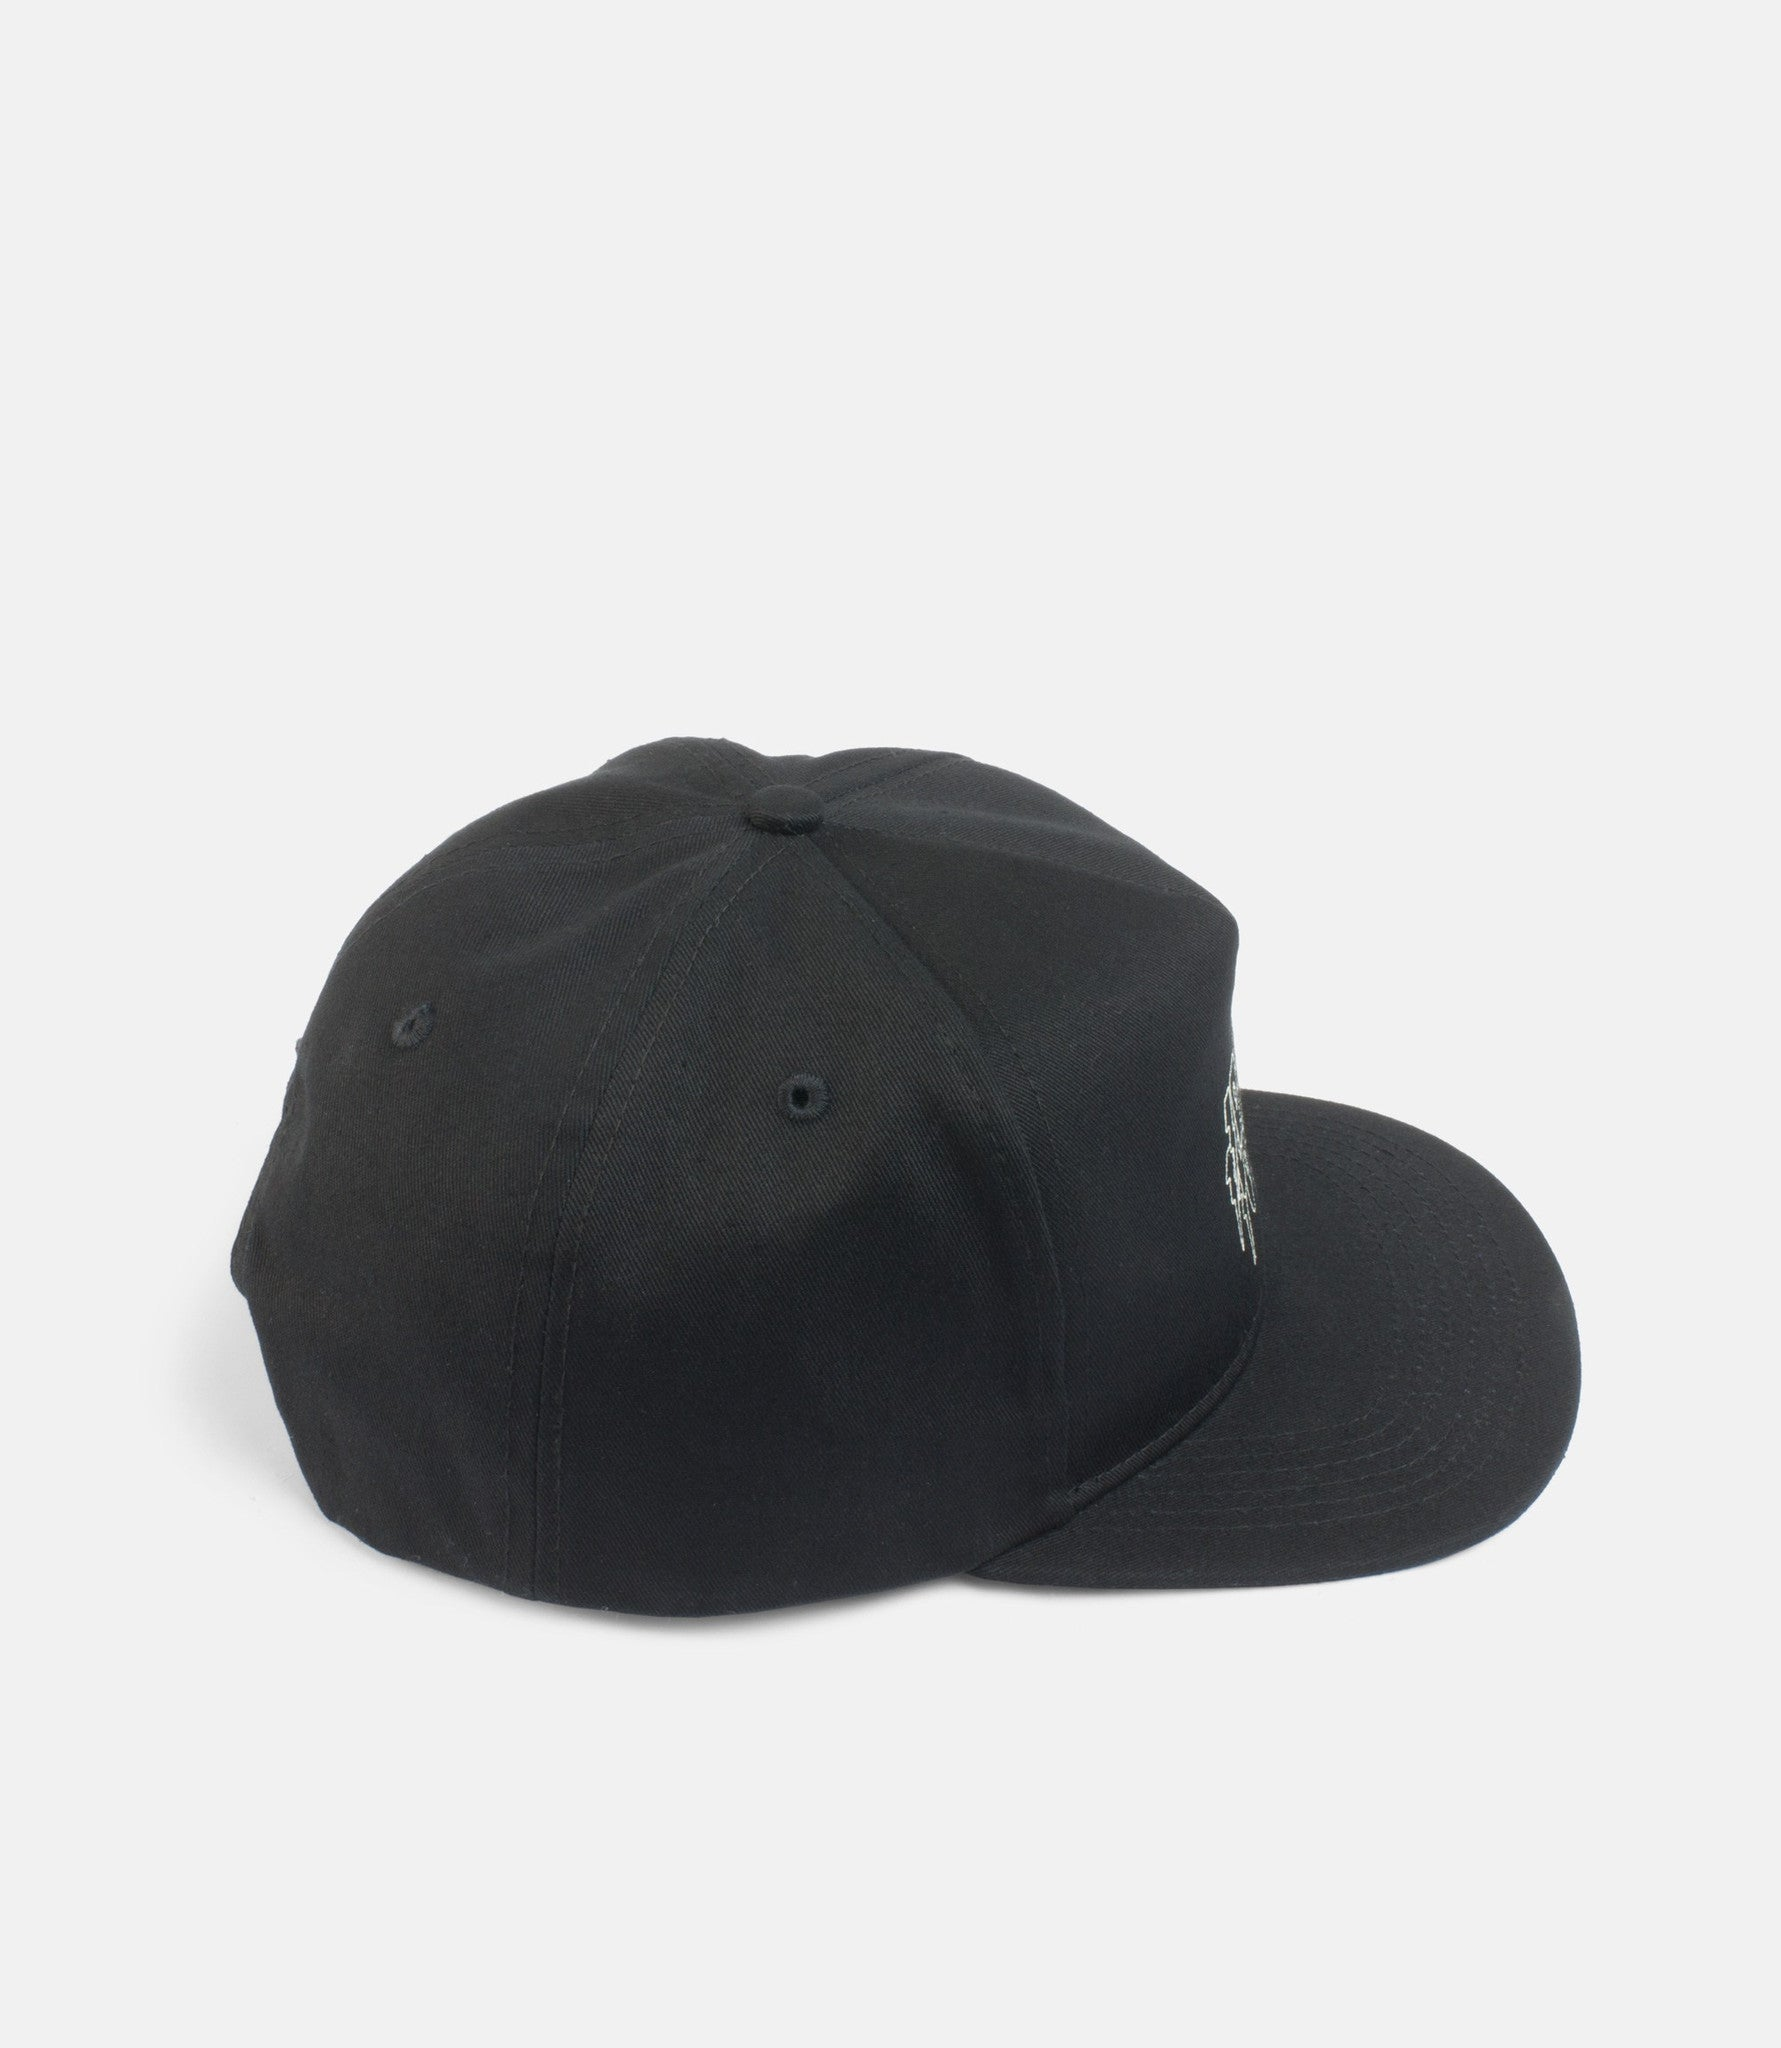 10Deep - Sound & Fury Cap, Black - The Giant Peach